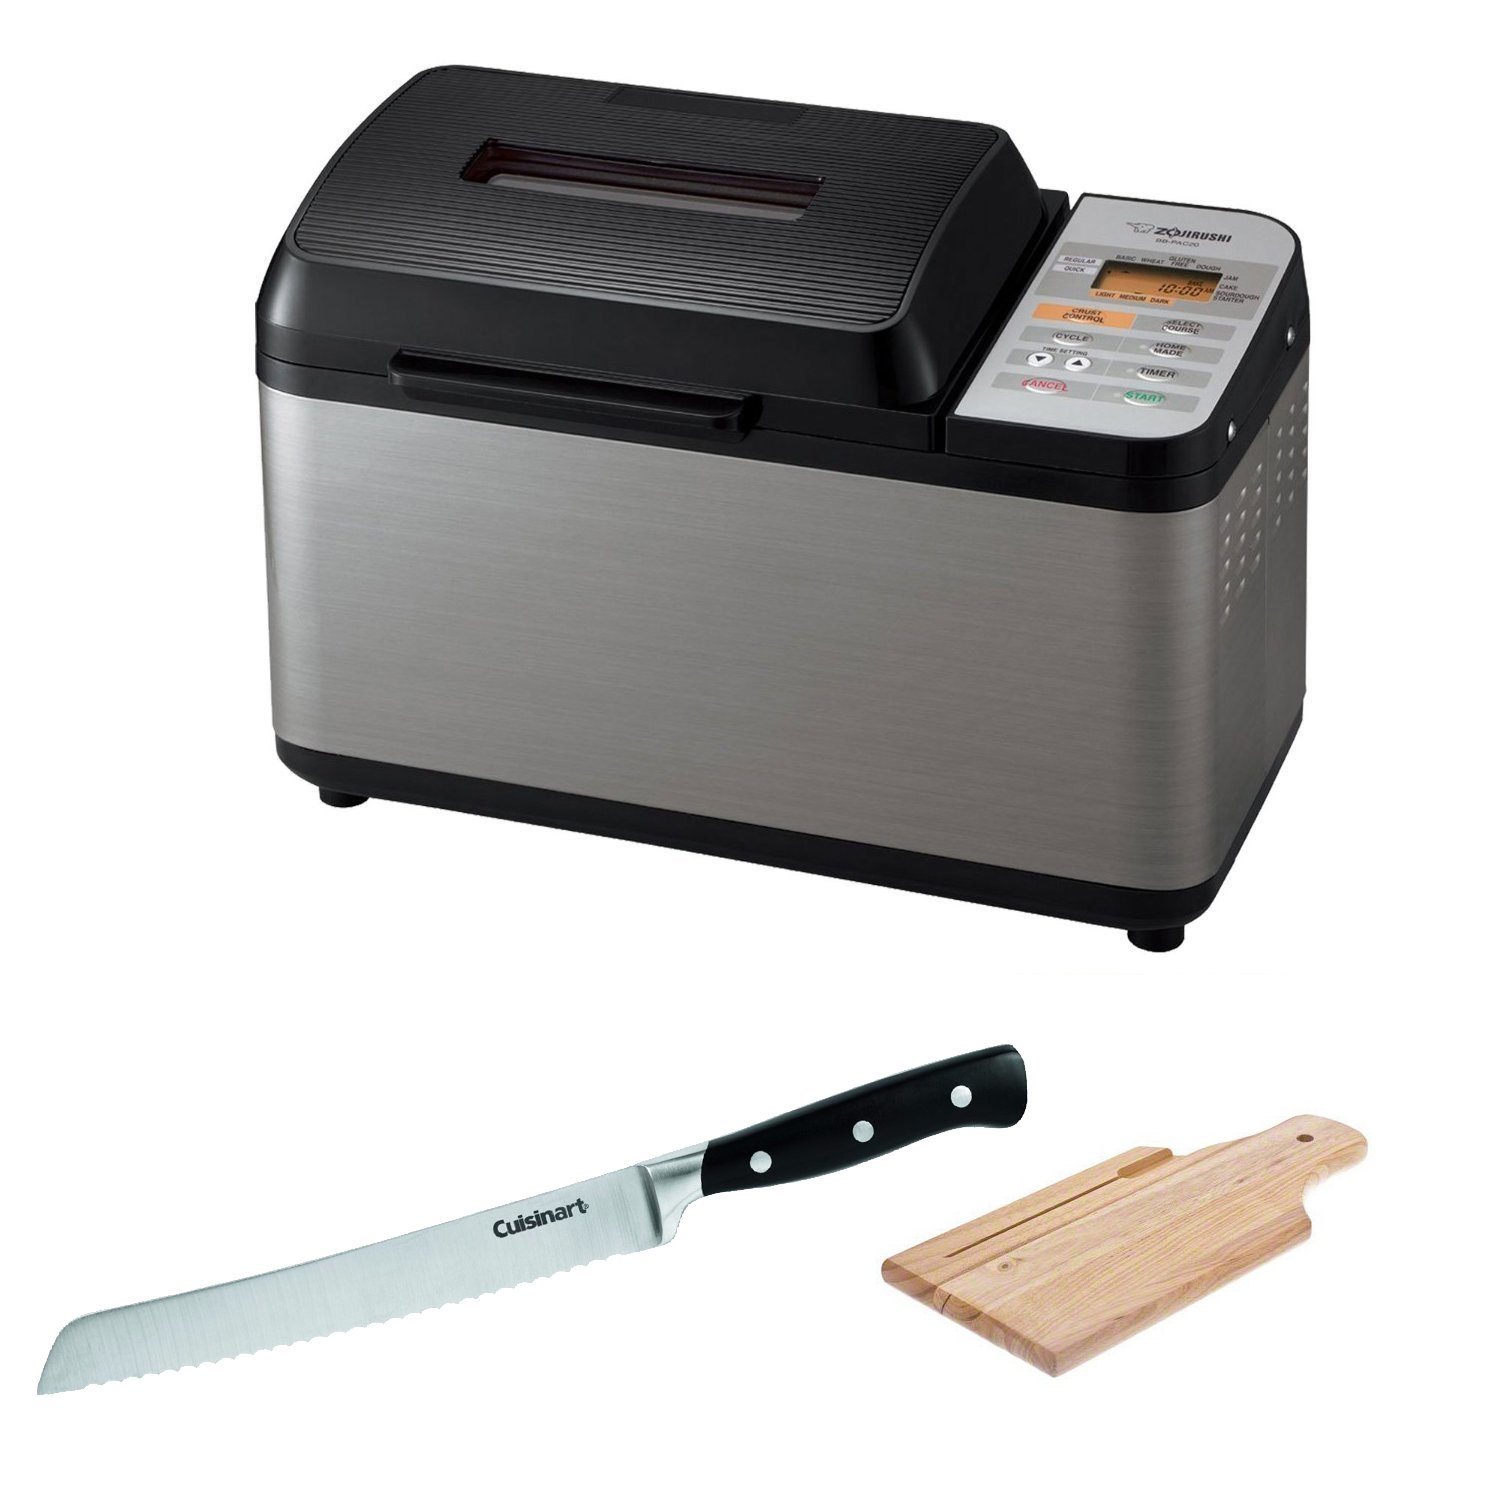 Zojirushi BB-PAC20 Home Bakery Virtuoso Breadmaker + Bread Knife, 8'' + Accessory Kit